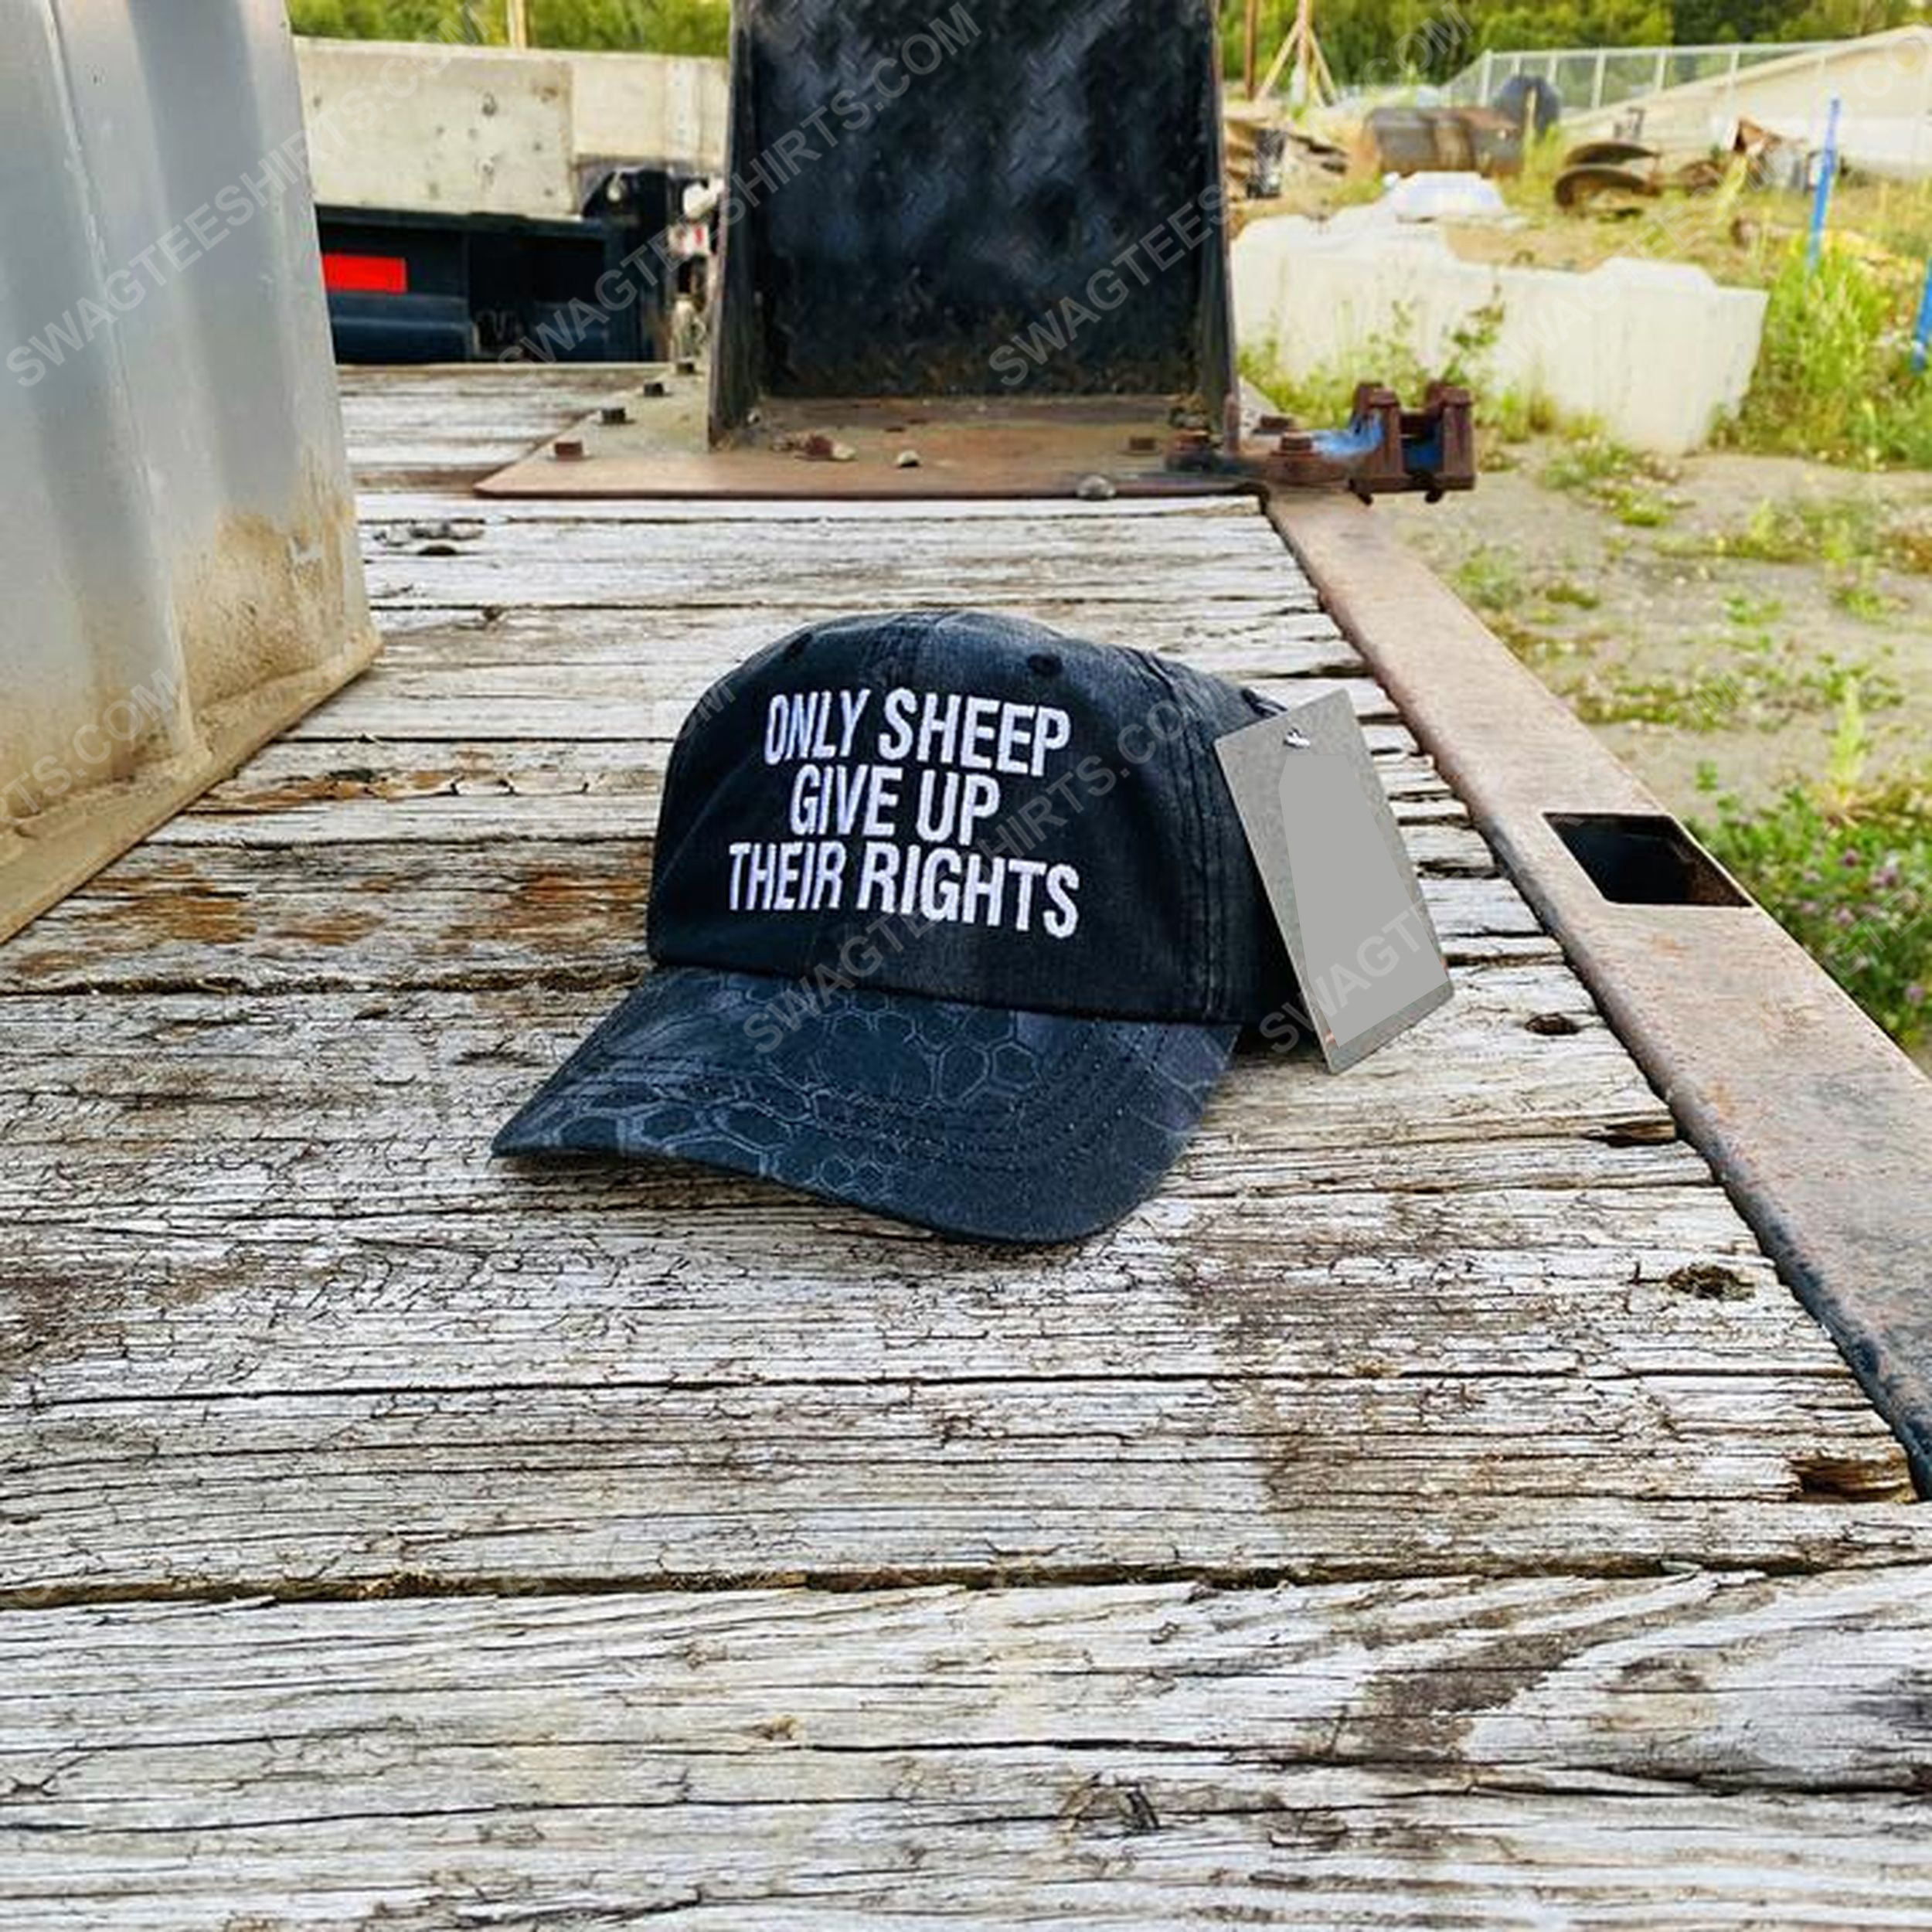 Only sheep give up their rights full print classic hat 1 - Copy (3)